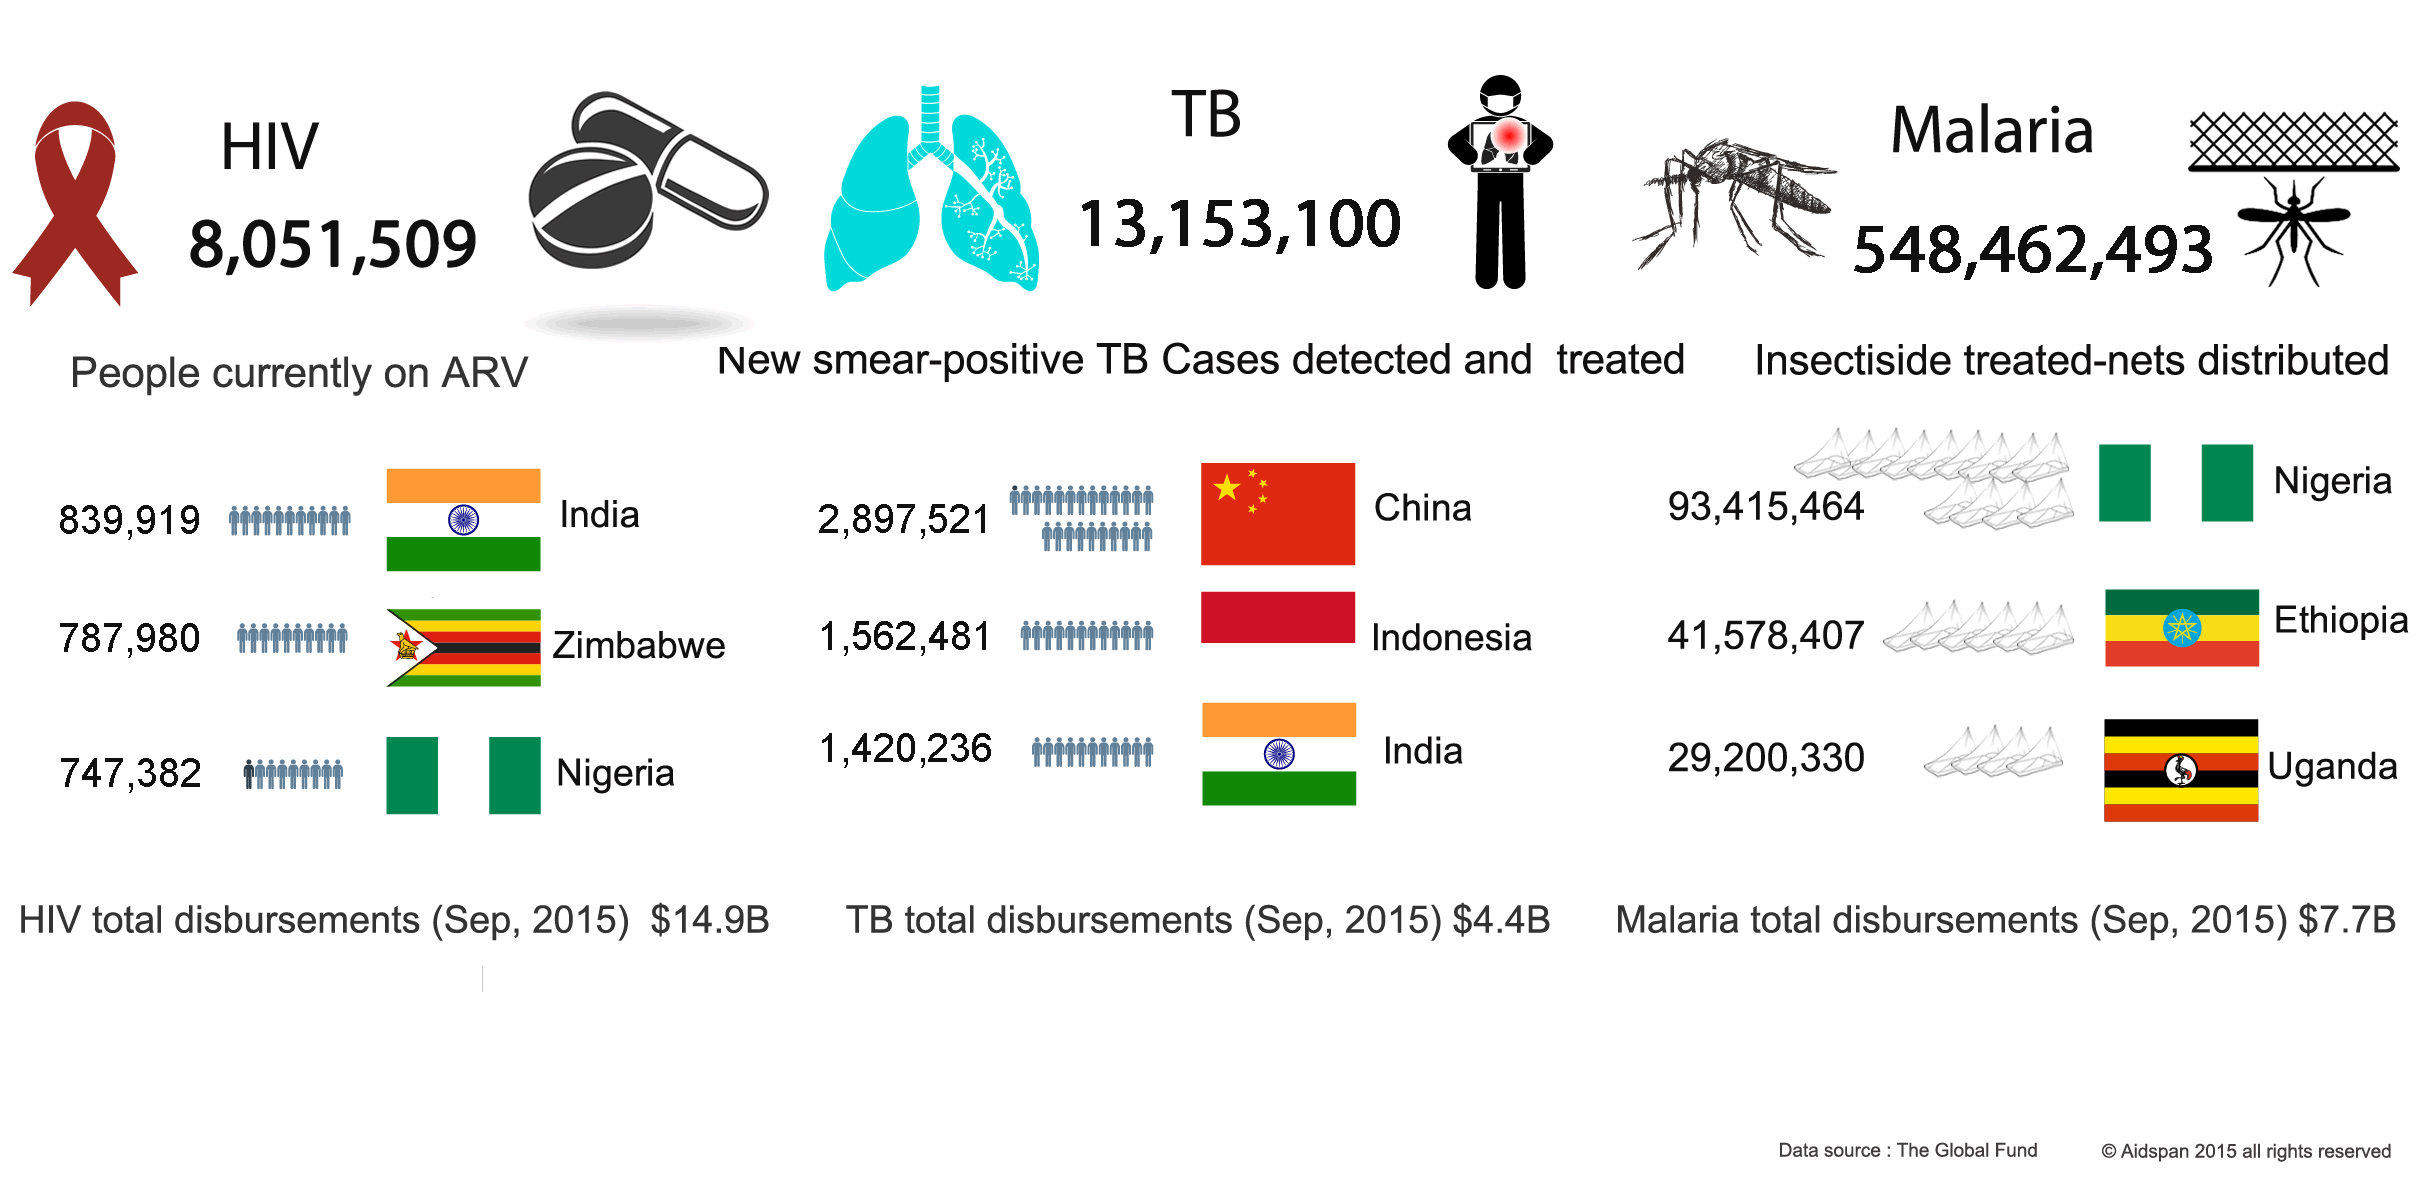 Global_fund_achievements_in_fighting_malaria_tb_hiv.png